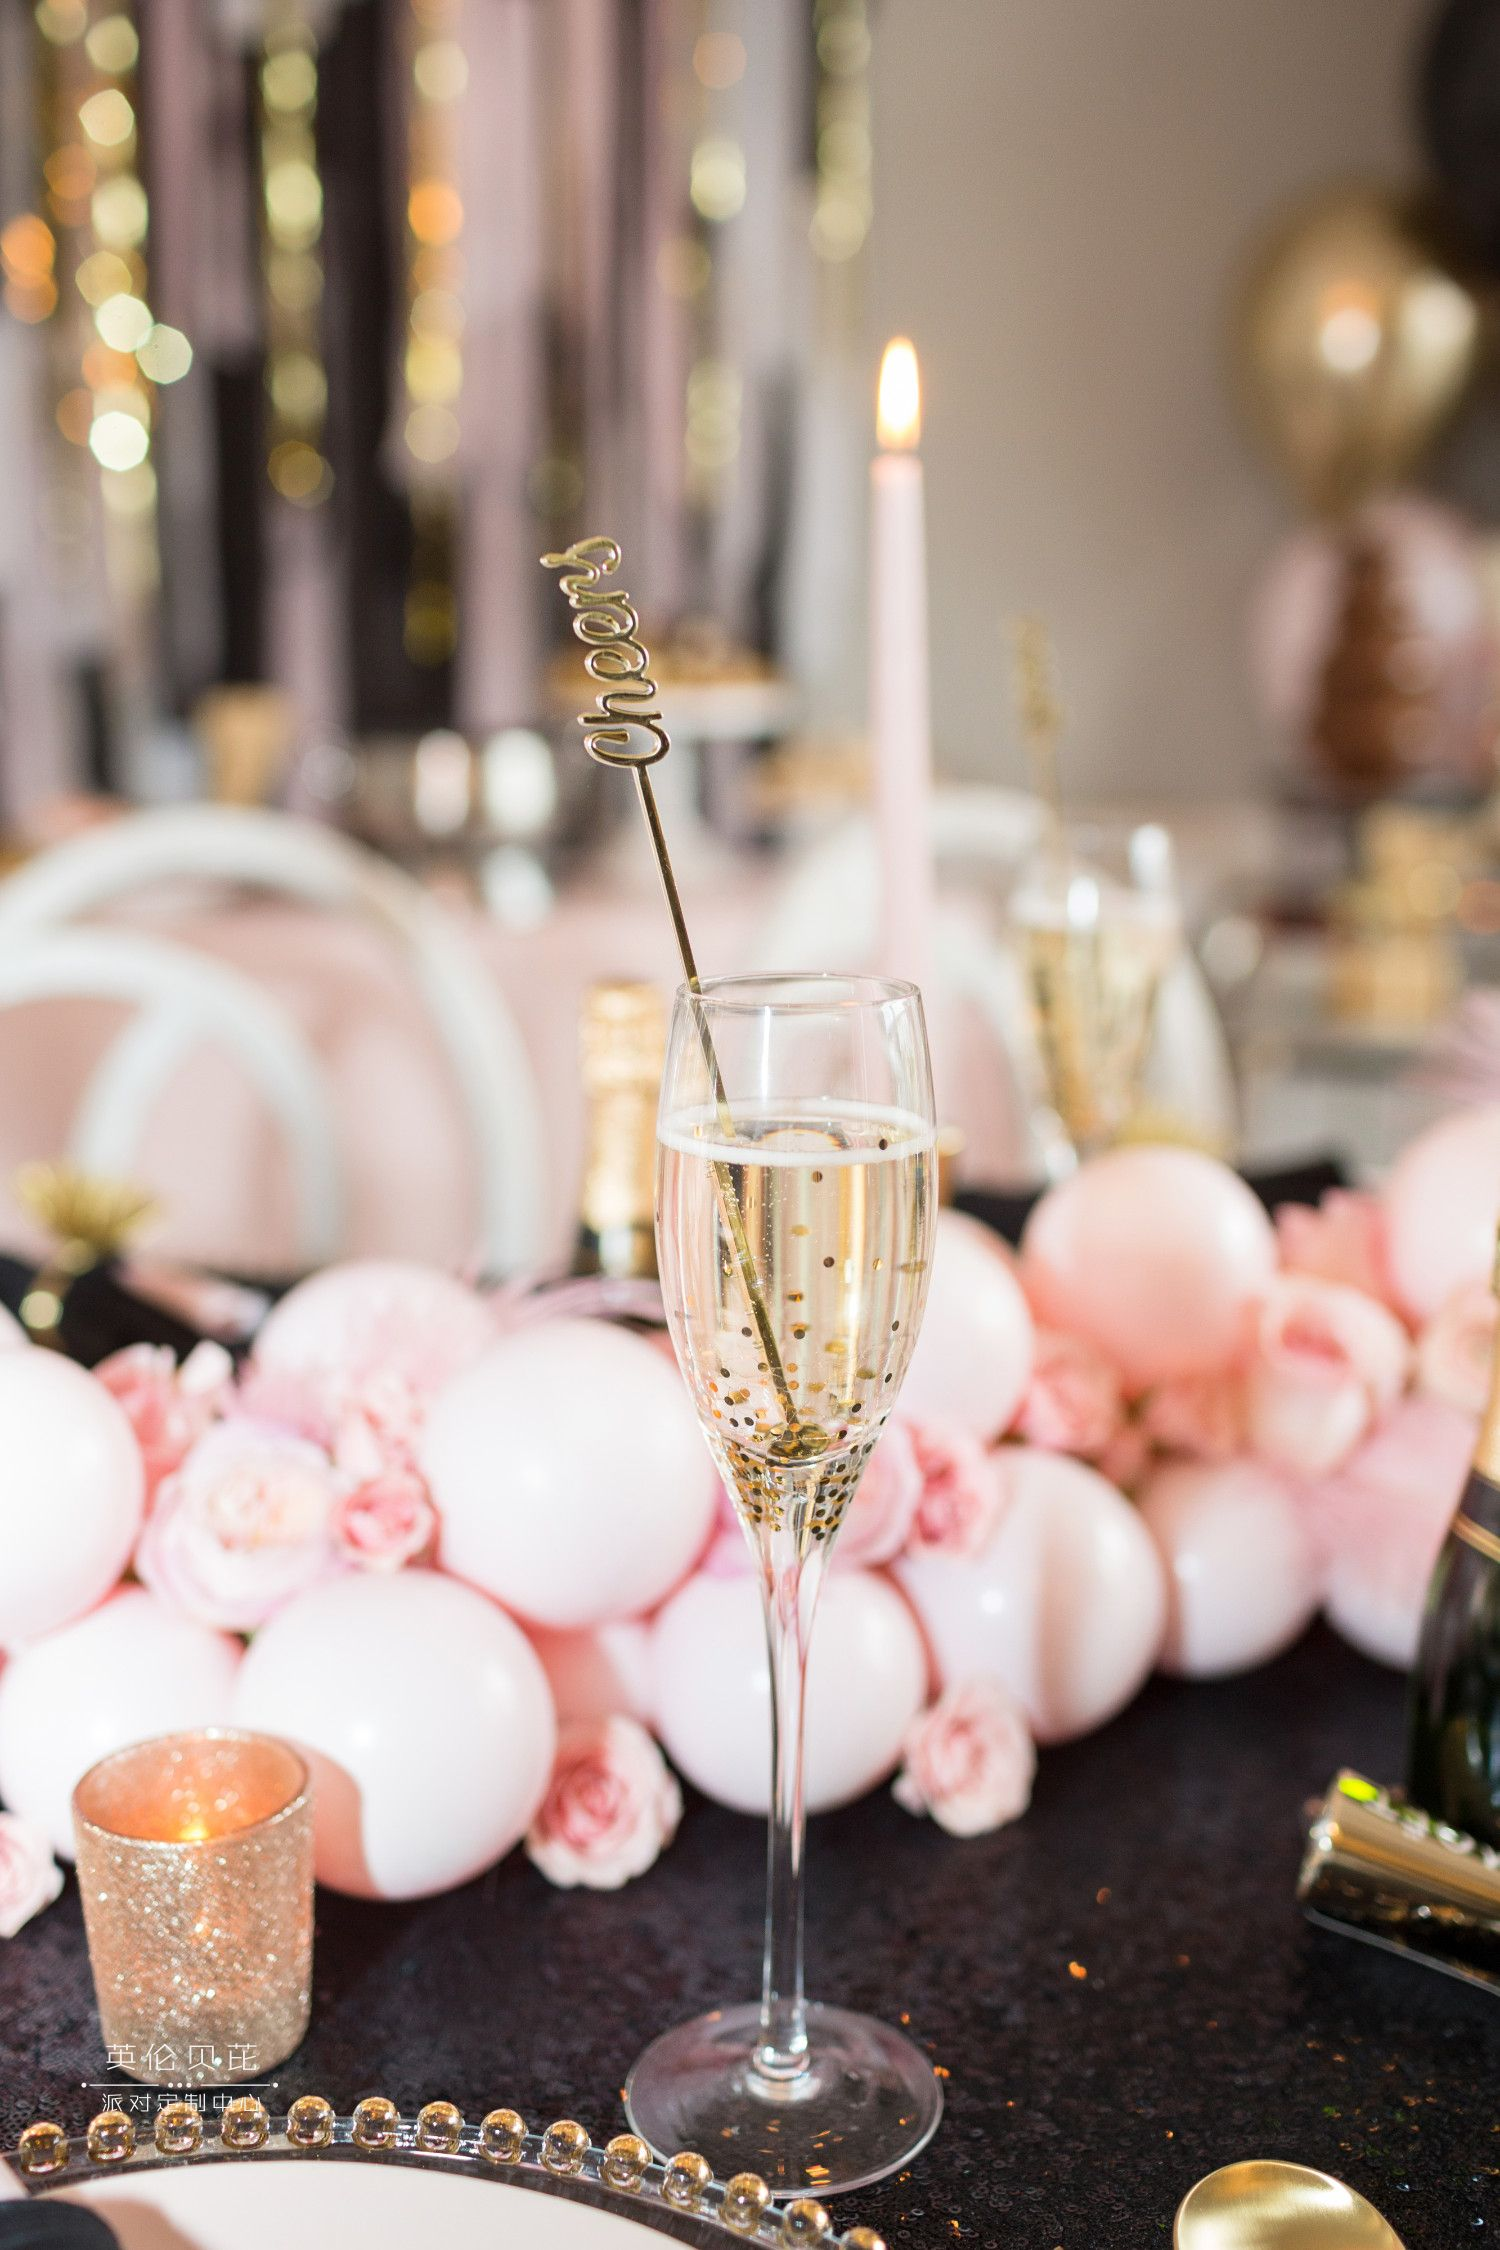 One-Stylish-Party-New-Years-Eve-17